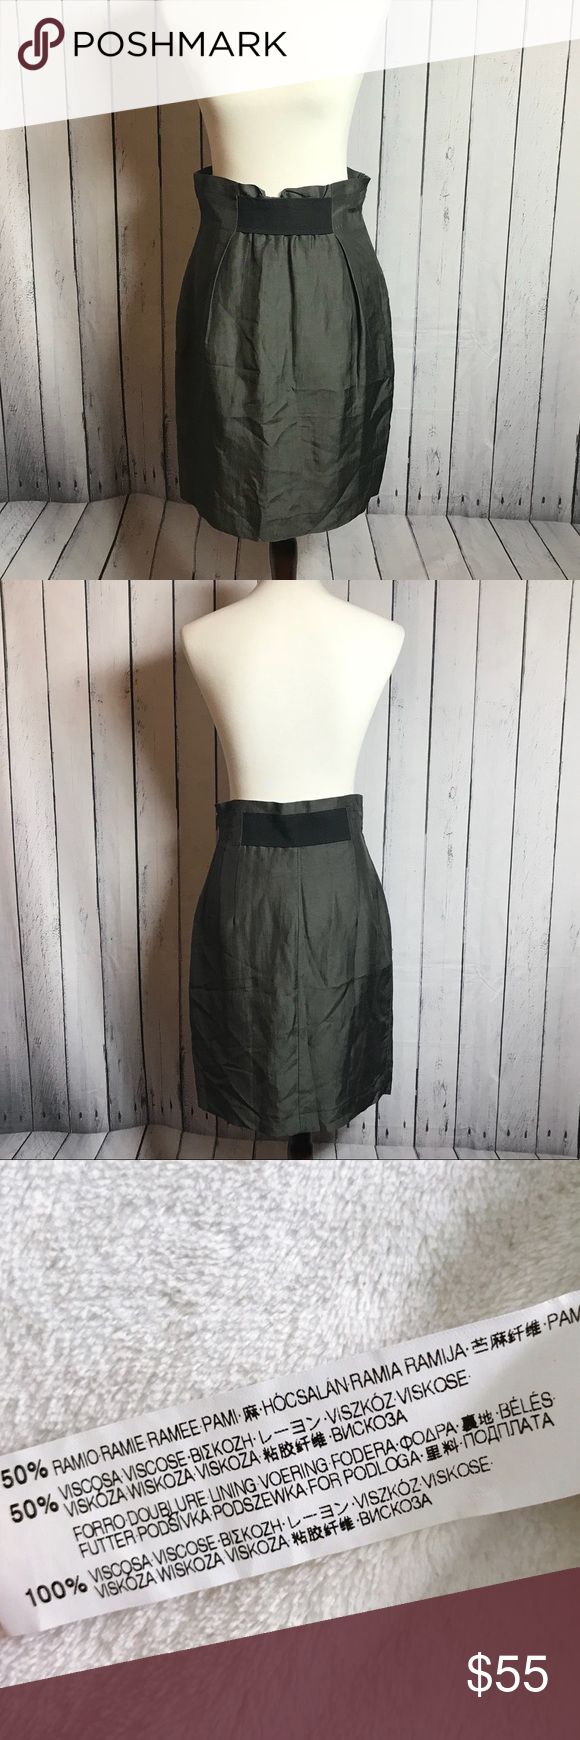 """NWT Zara Pencil Skirt Pencil skirt with electric stretch band waist Linen silk like (see tag photo for fabric material) Gathered waist   Waist: 15"""" Hips: 18"""" Length: 23""""  New with tags so excellent condition. Teeny tiny snag that is not anything really near zipper. See photo. Just being thorough though with detail. Zara Skirts Pencil"""